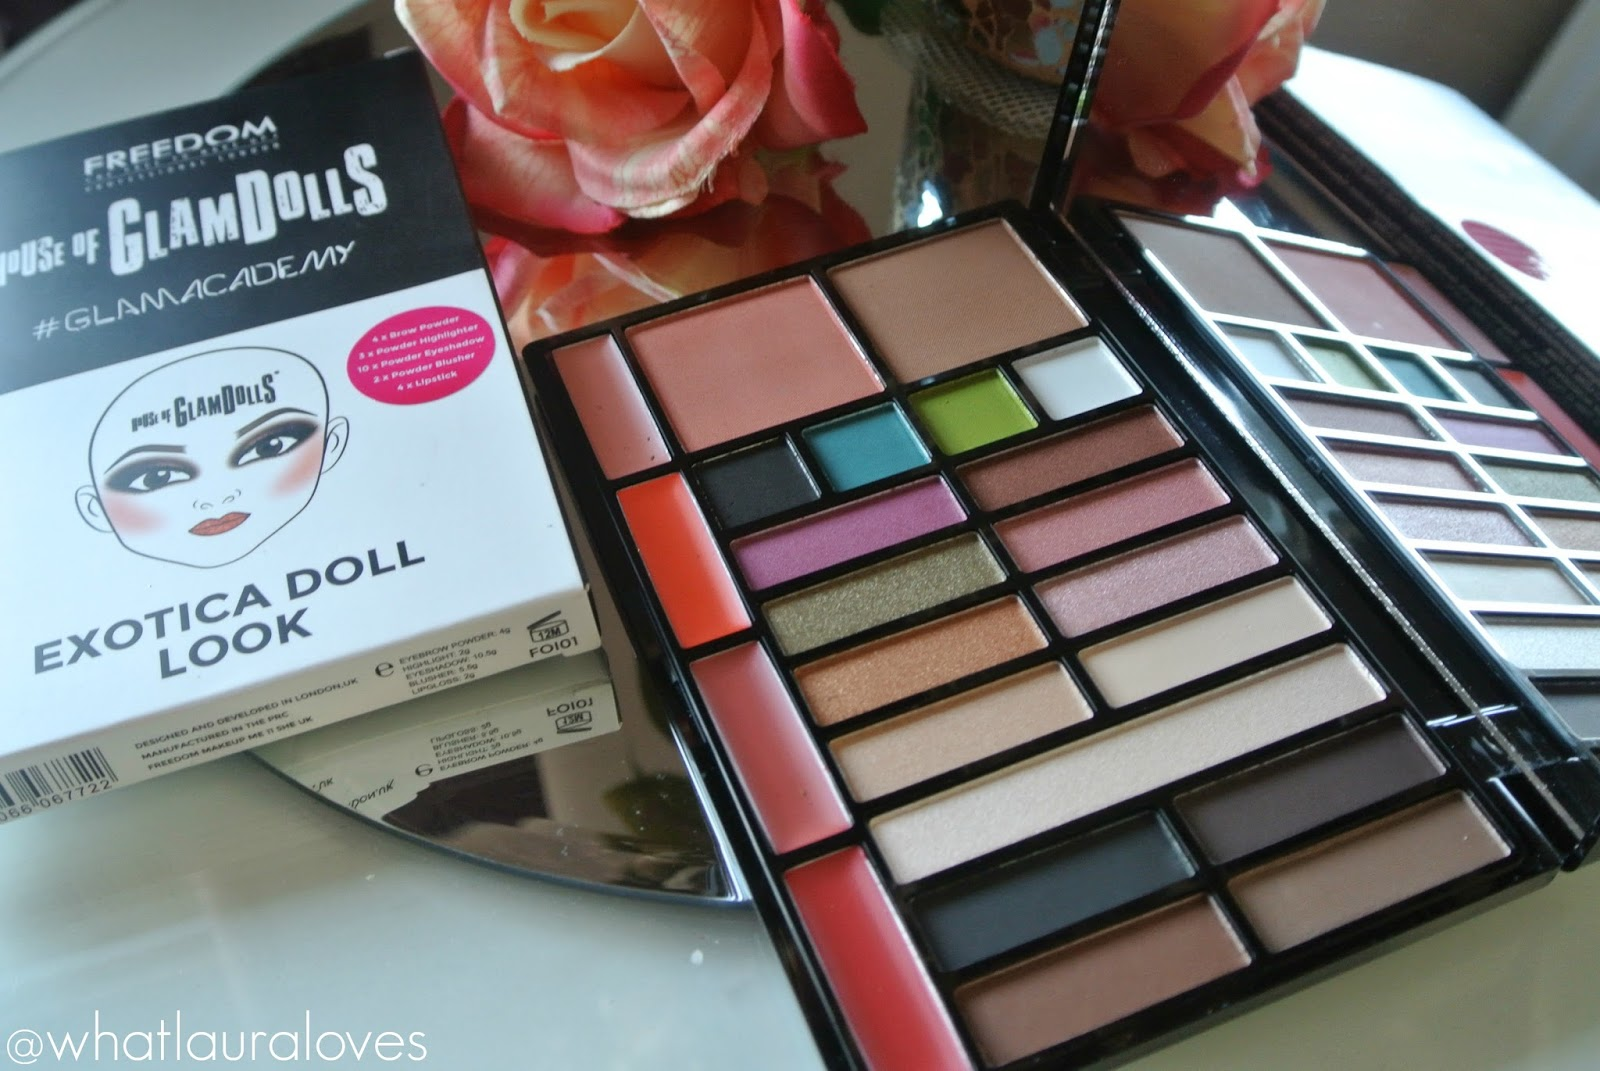 Freedom House of GlamDolls Exotica Doll Look Palette Lipstick Shades Inside and outer packaging